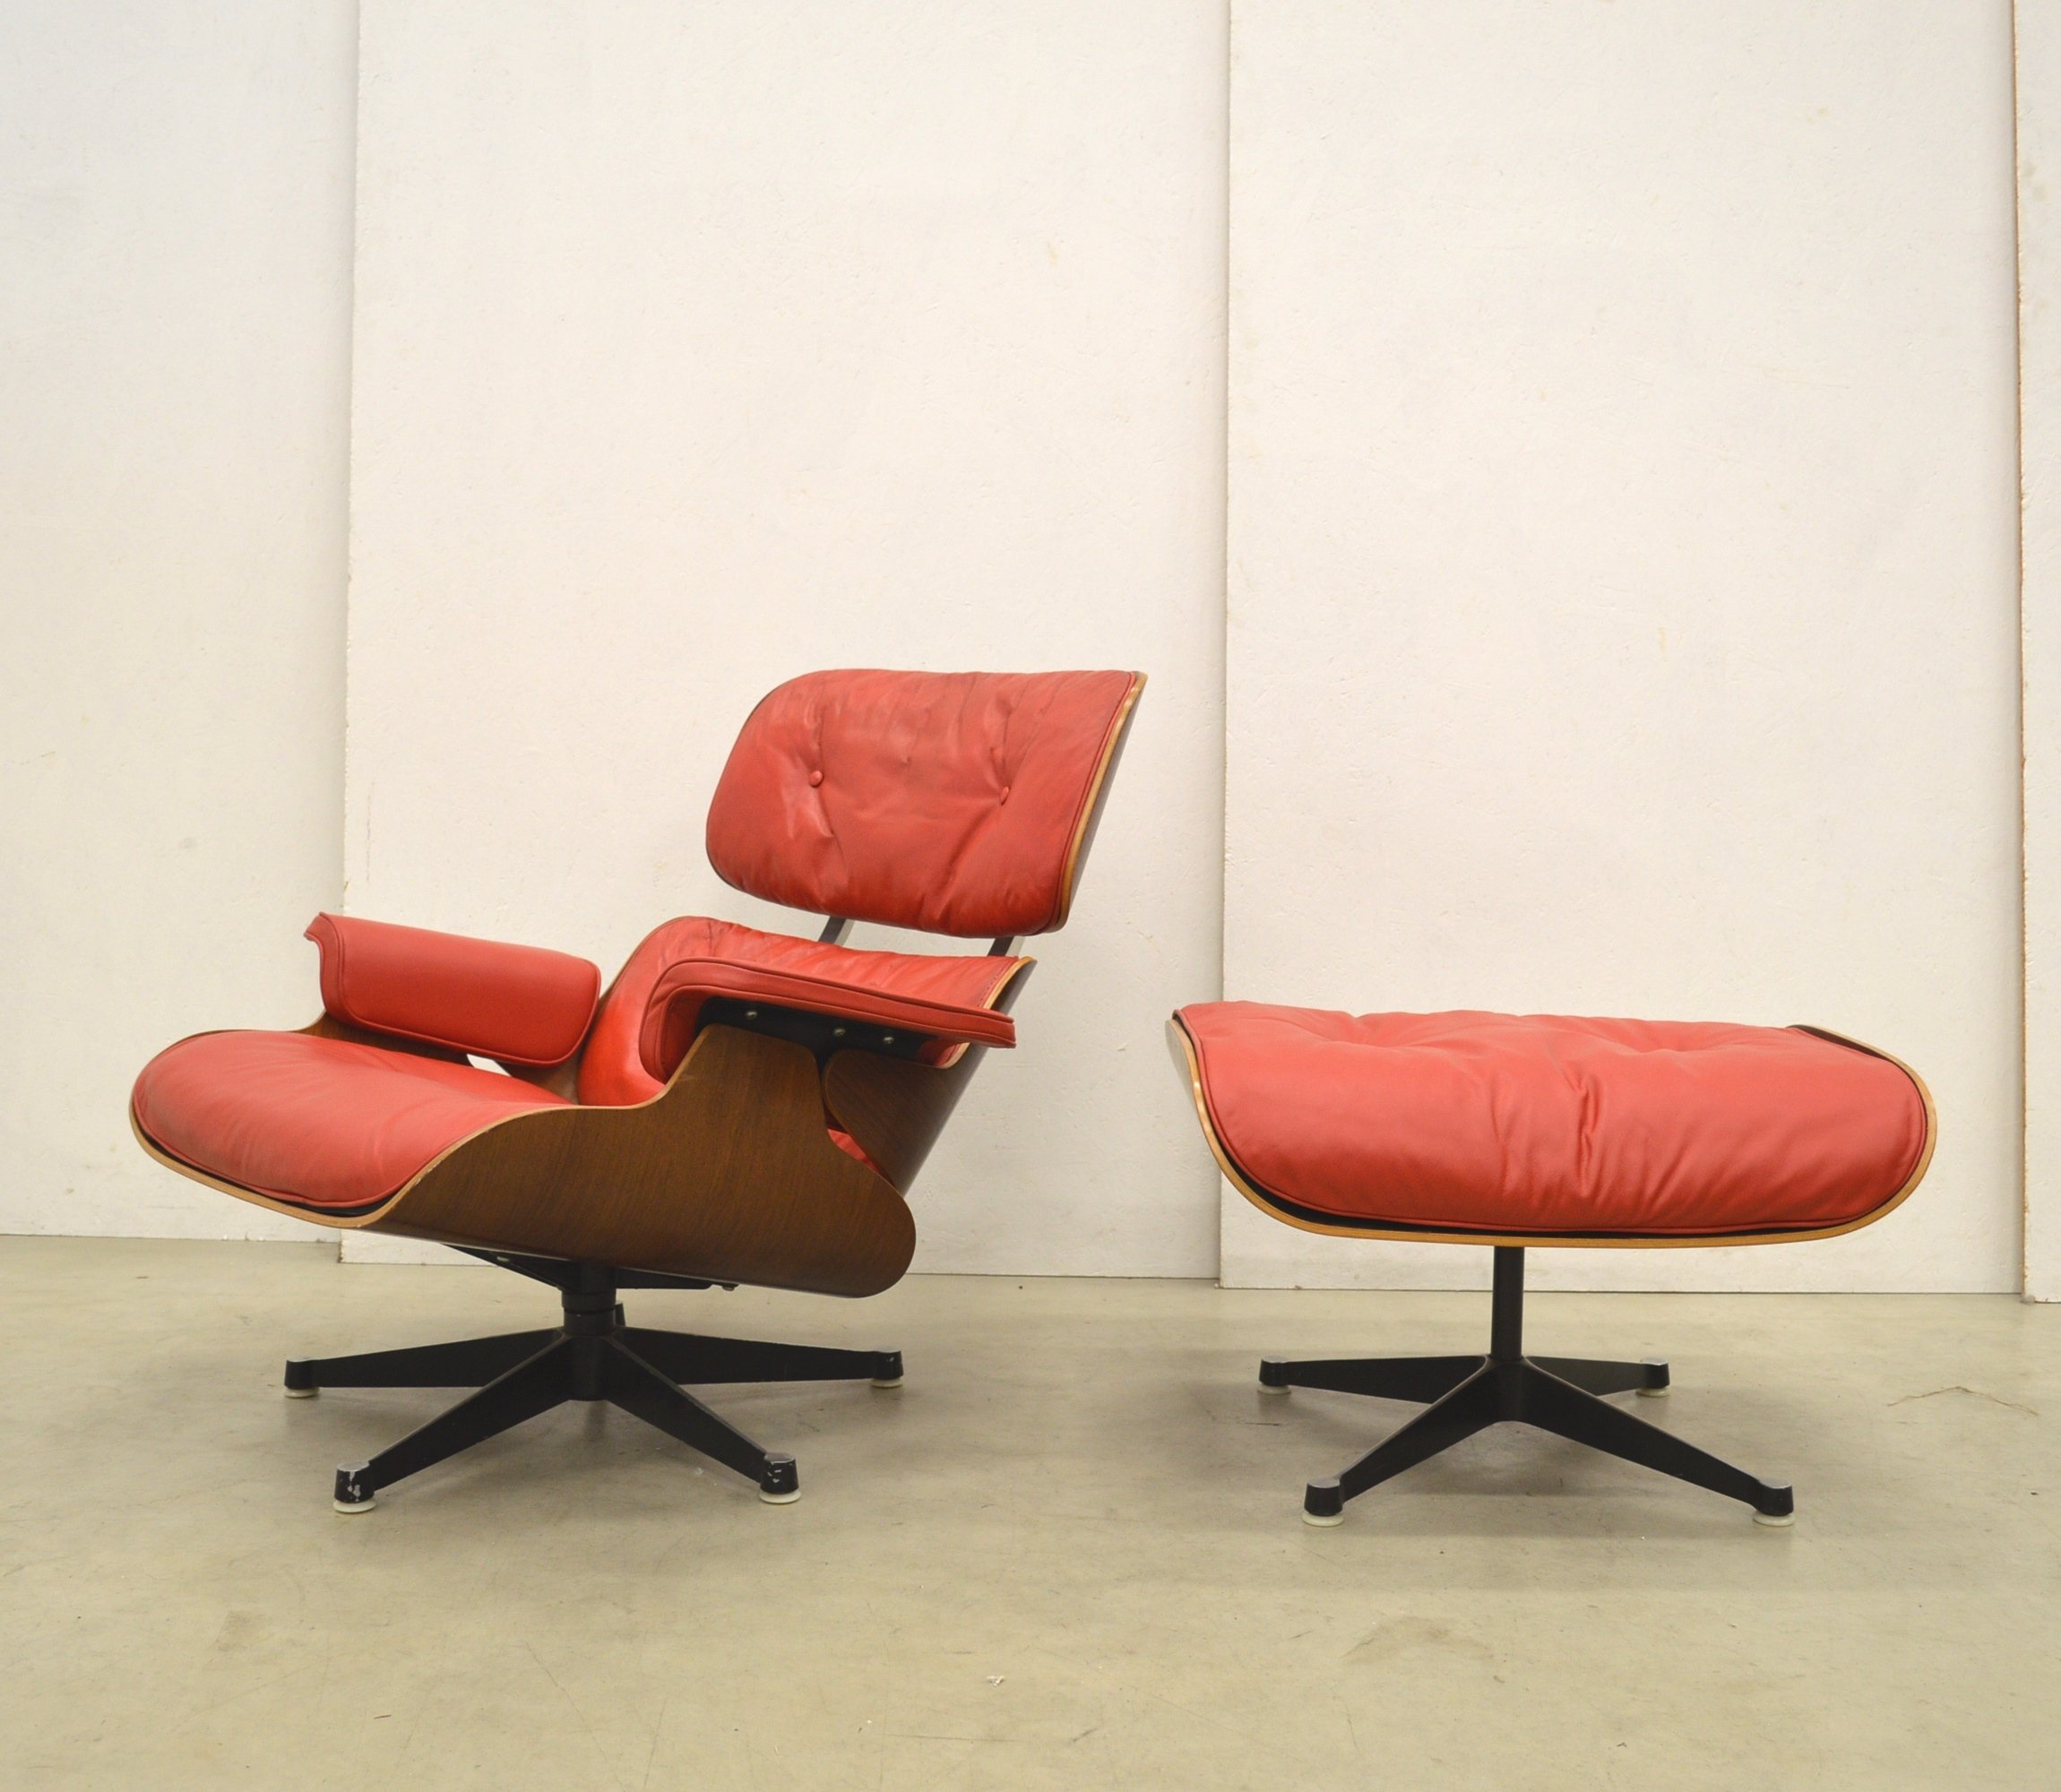 1st Edition Eames Lounge Chair U0026 Ottoman By Herman Miller, 1950s